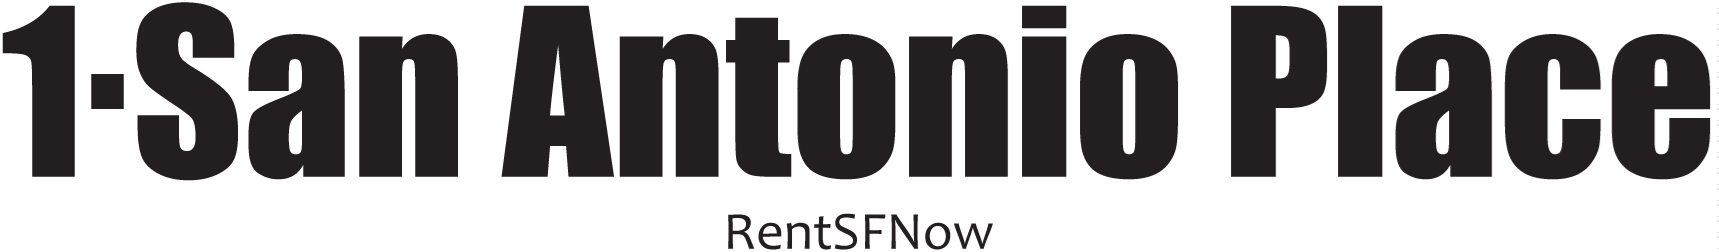 1 SAN ANTONIO Apartments Property Logo 1